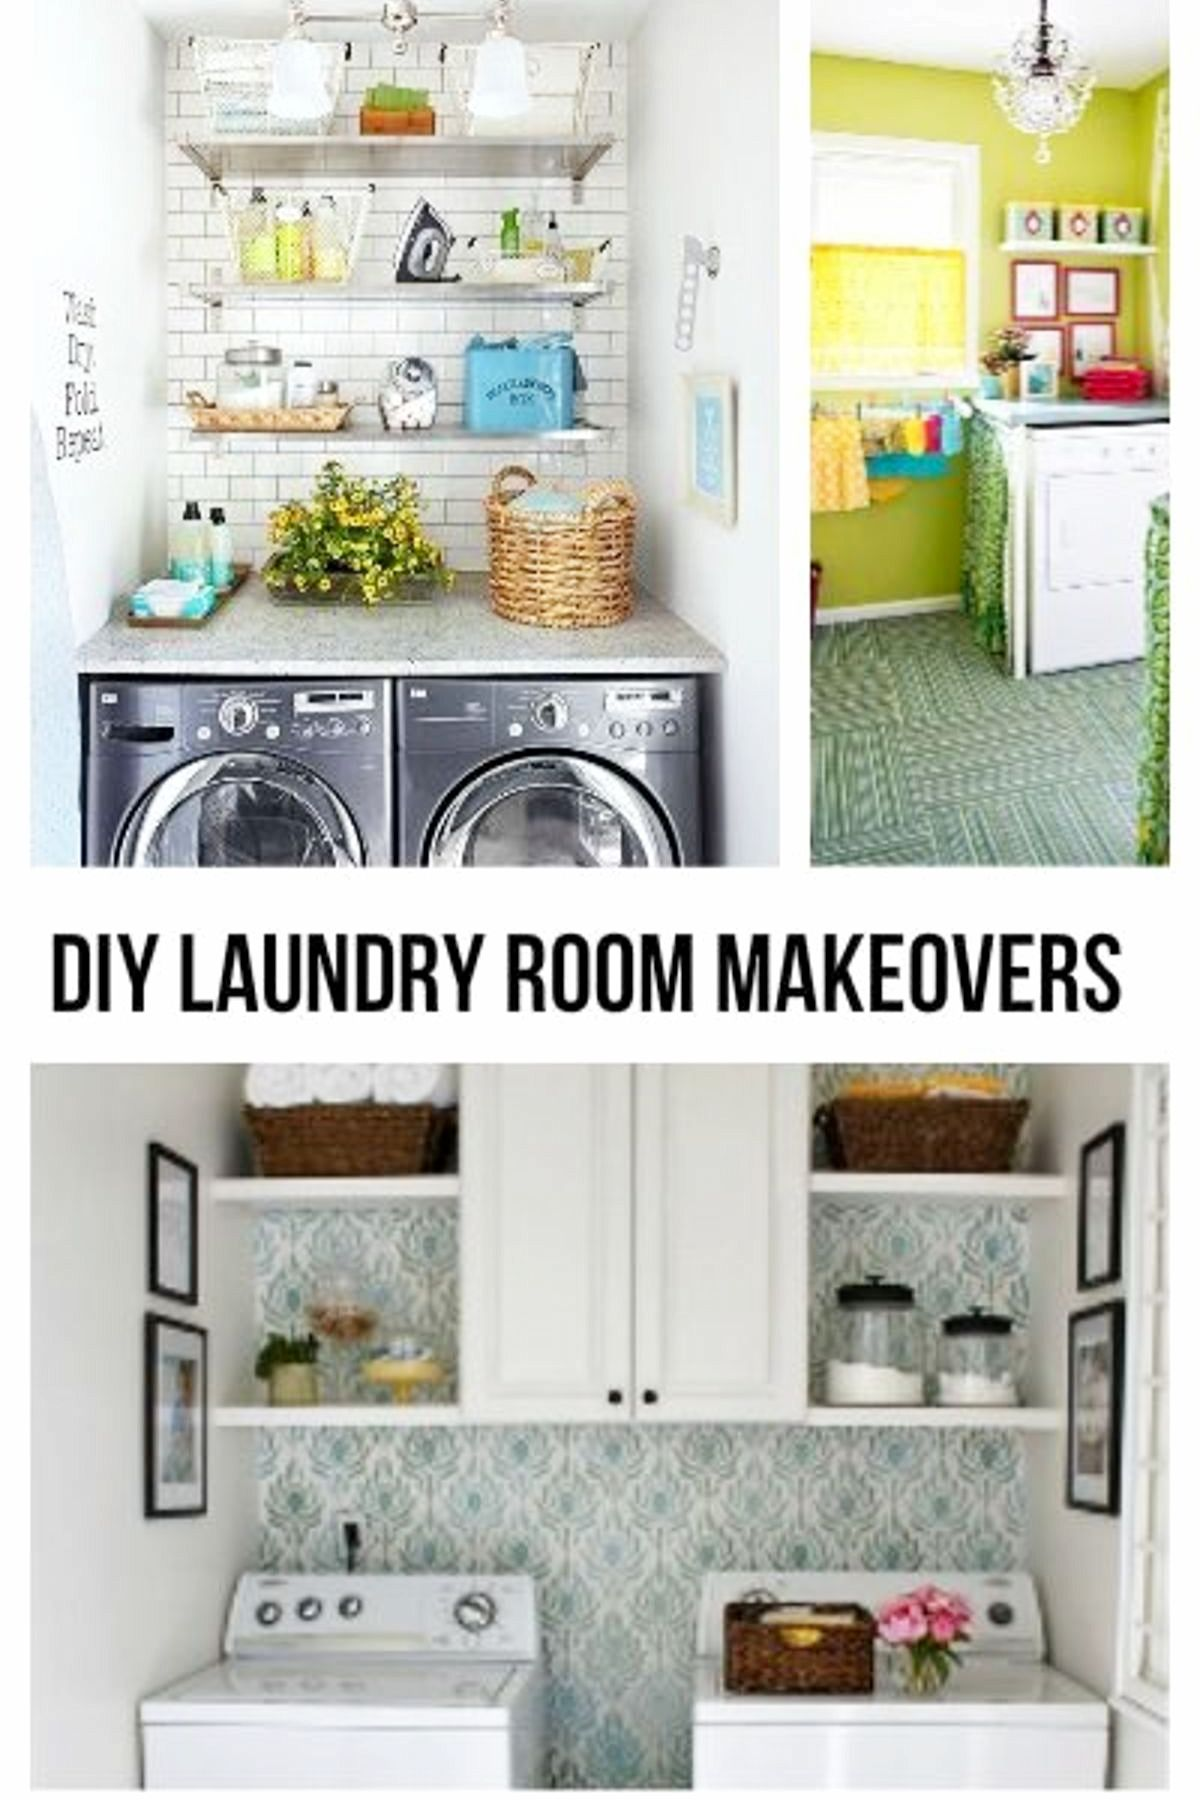 Small Laundry Room Ideas Space Saving Ideas For Tiny Laundry Rooms Creative And Simple Diy Small Laundry Rooms Laundry Room Ideas Small Diy Tiny Laundry Rooms